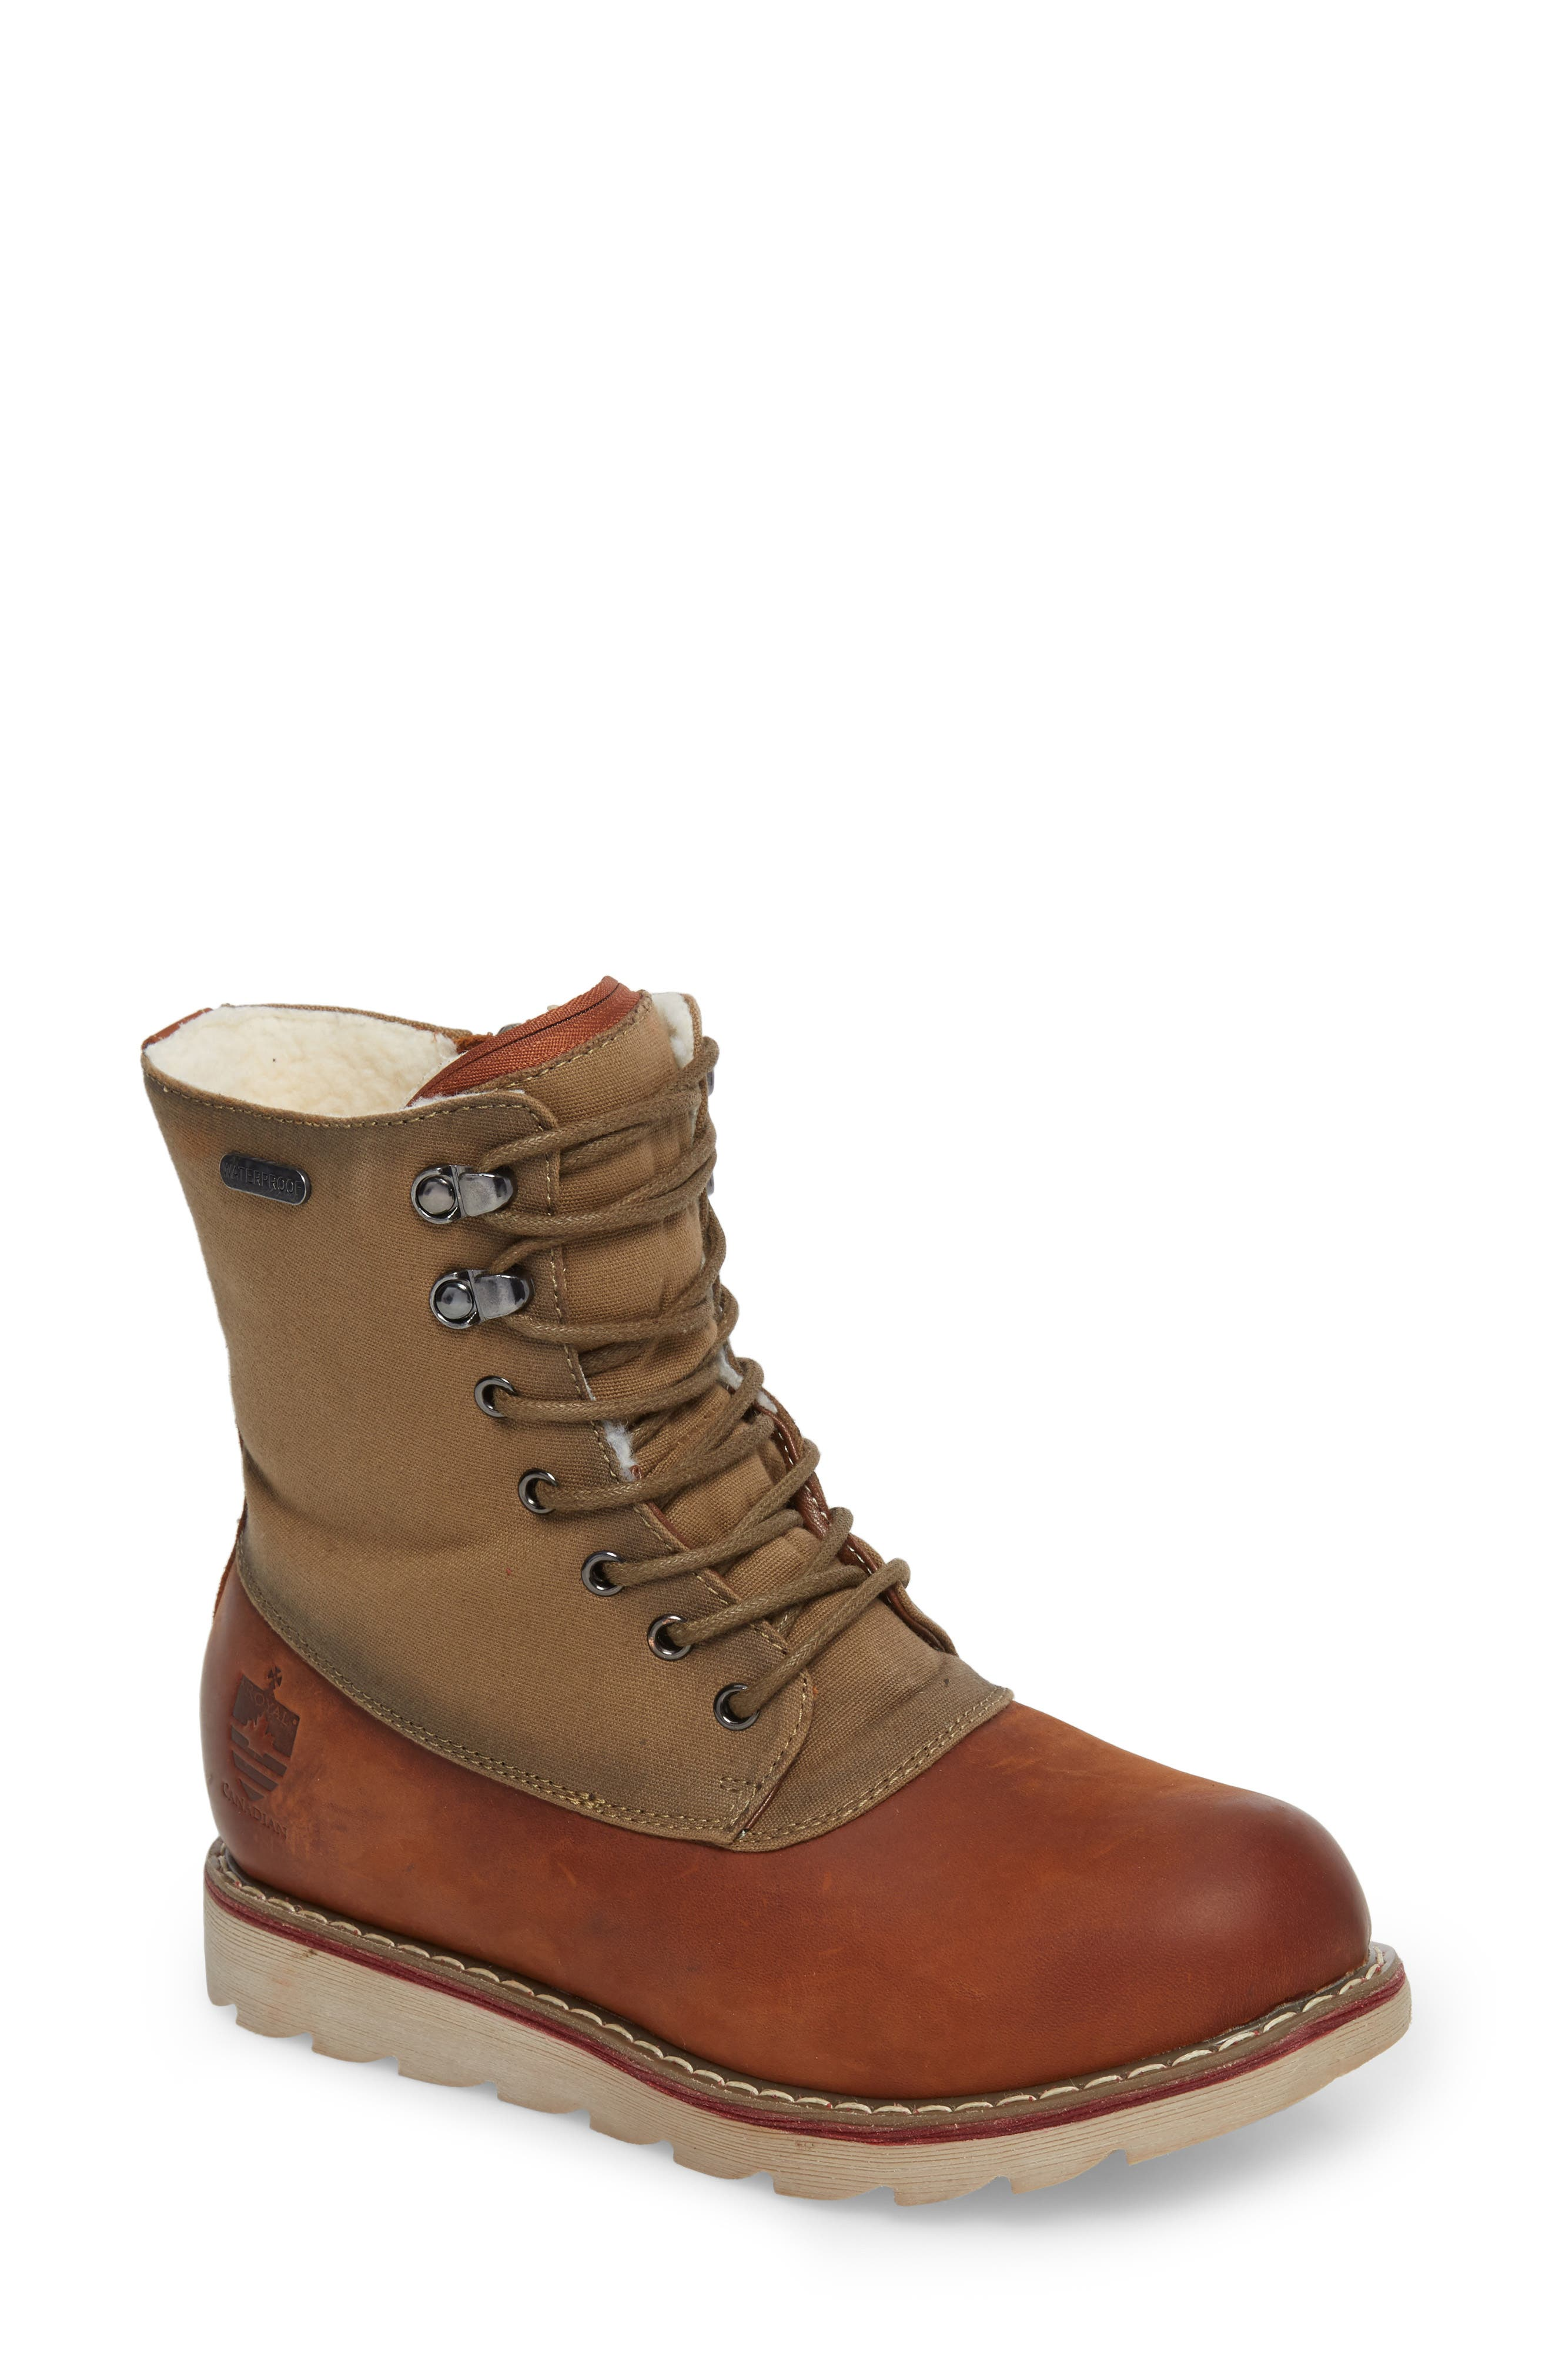 Royal Canadian Lasalle Waterproof Insulated Winter Boot- Brown